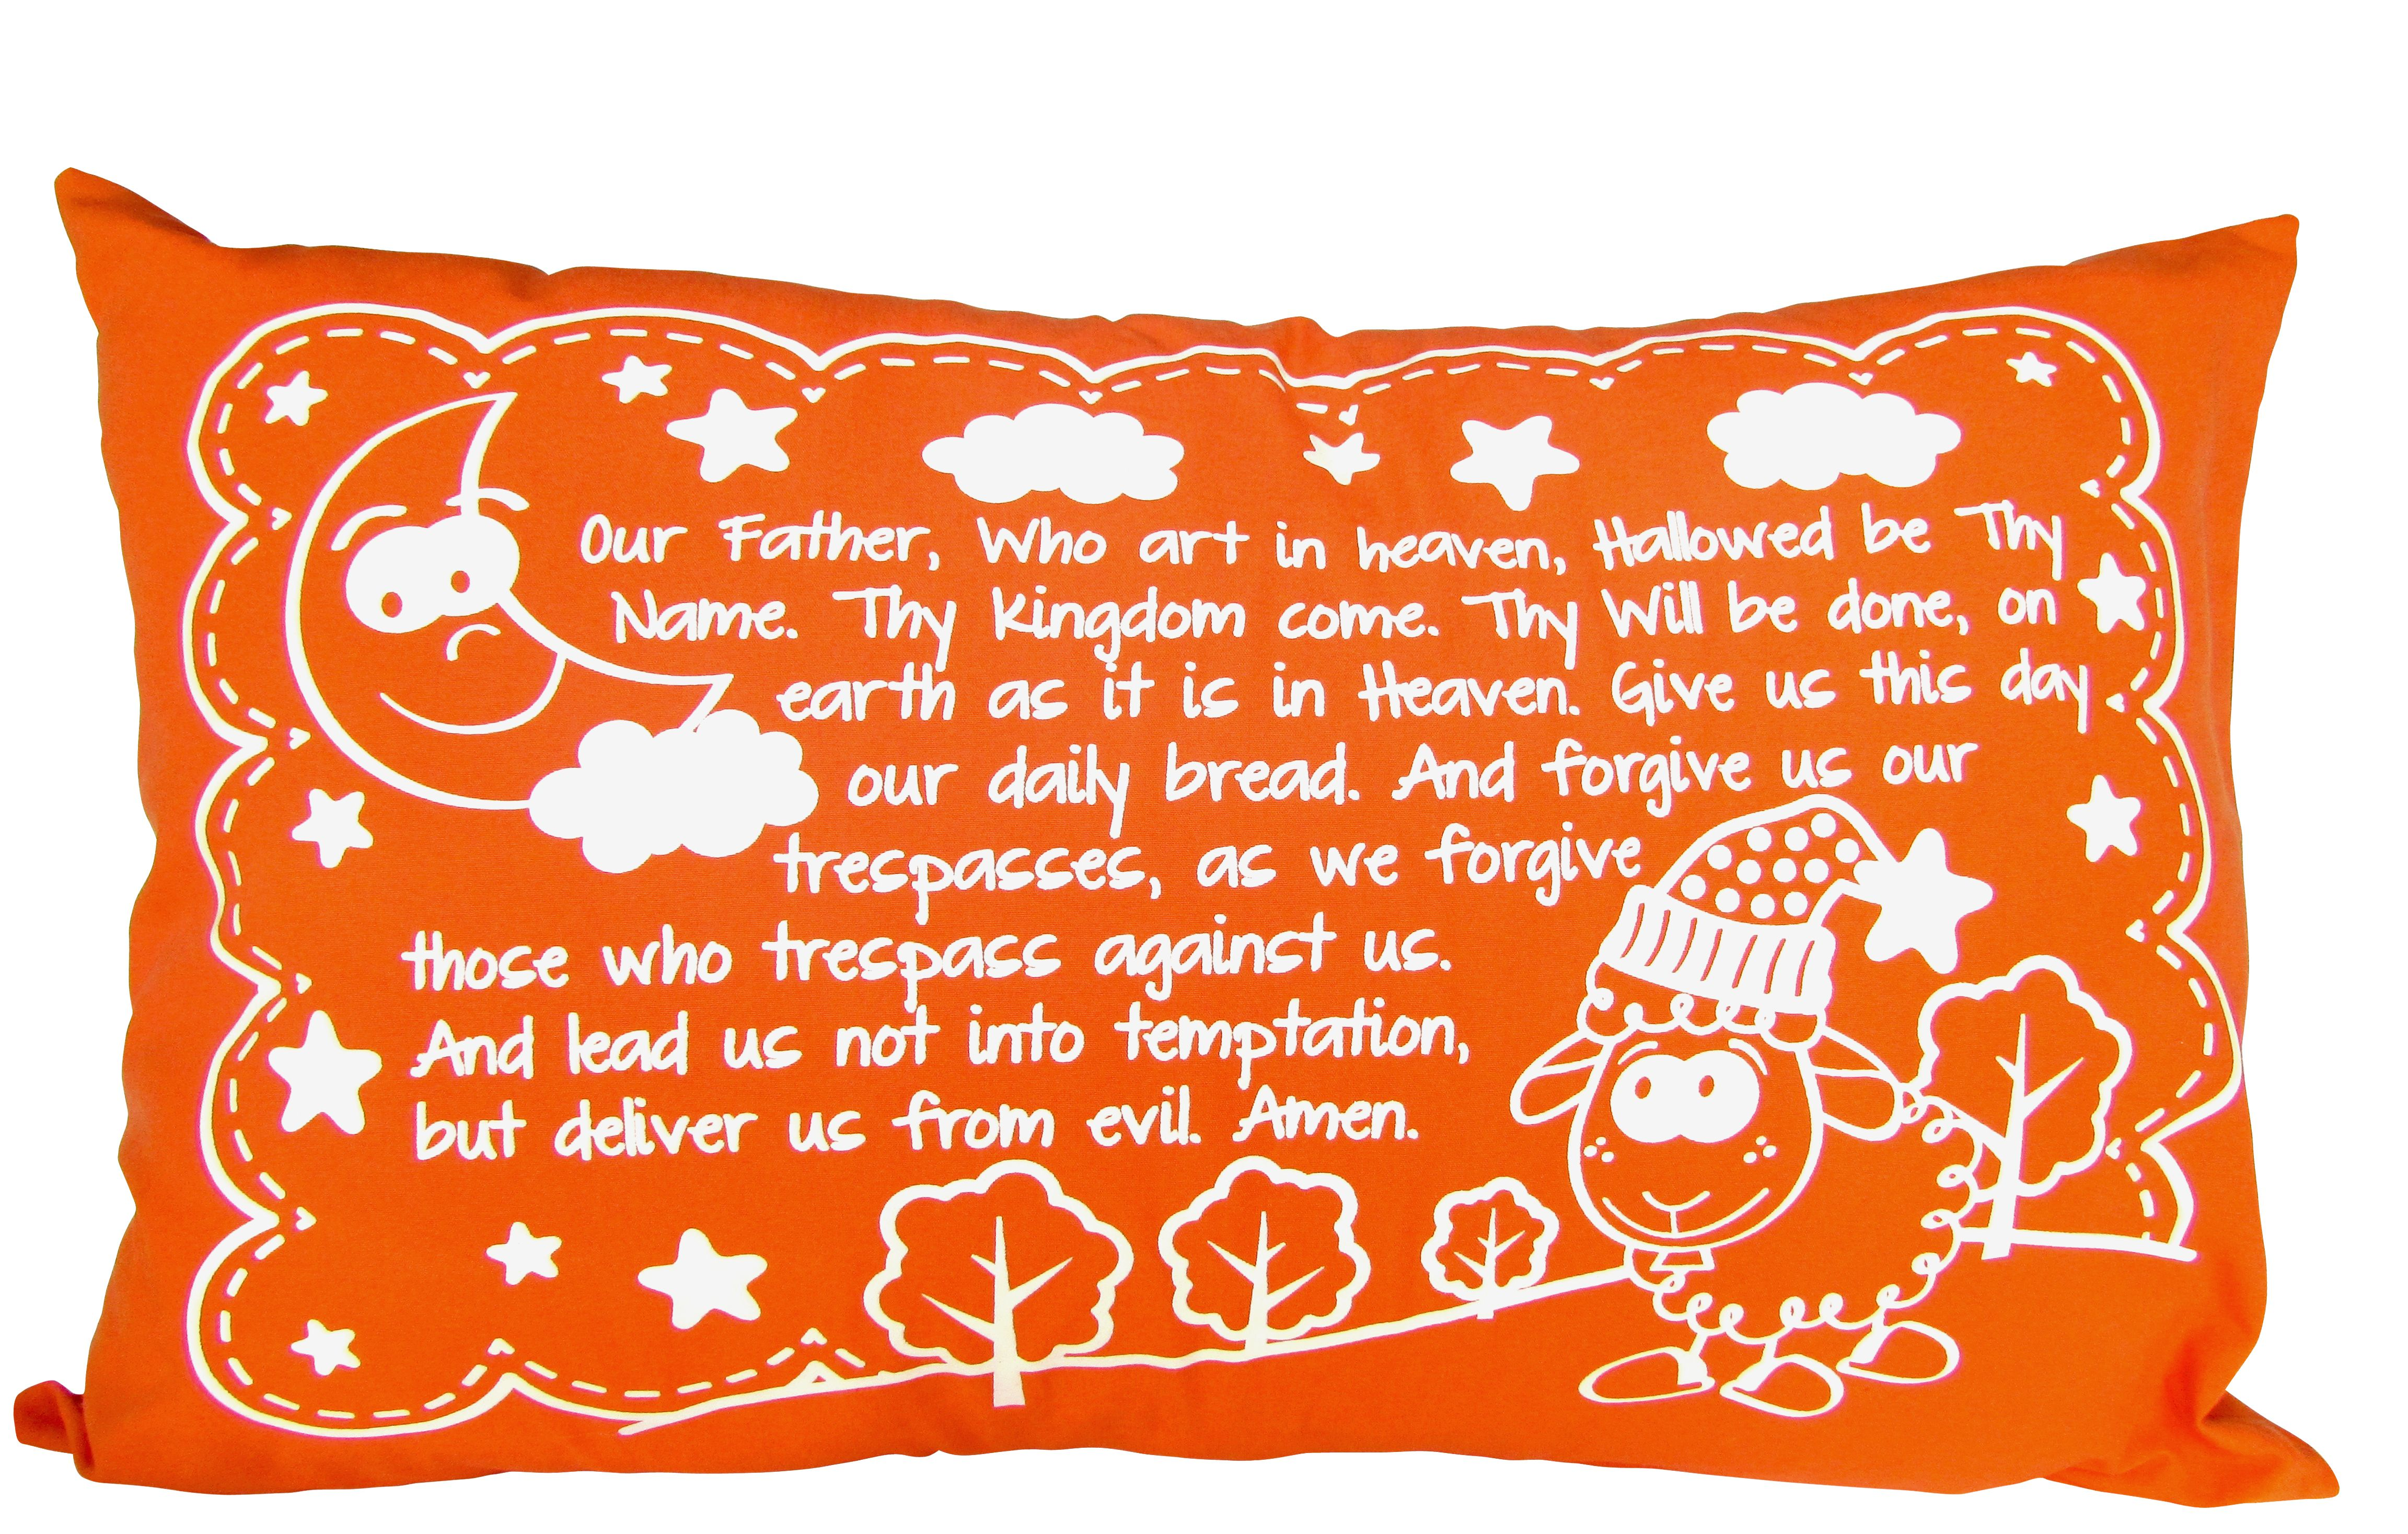 Pillowcase In Spanish Glow In The Dark Pillowcase With The Prayer Of Our Father Also